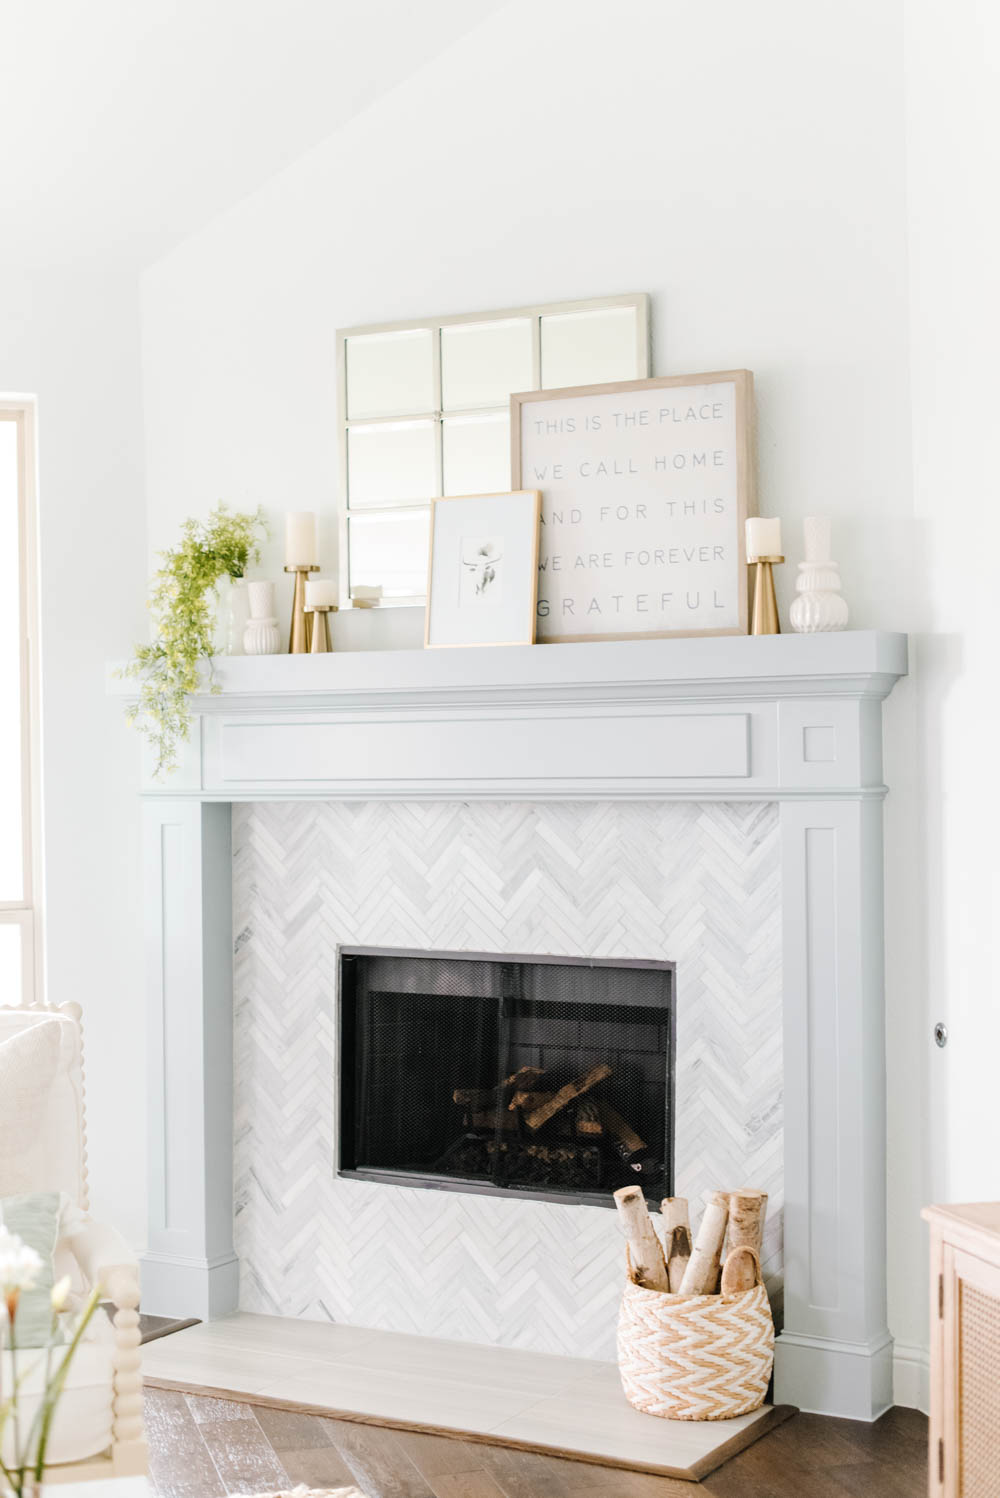 Update a space with this simple and affordable tip! #ABlissfulNest #designtip #fireplace